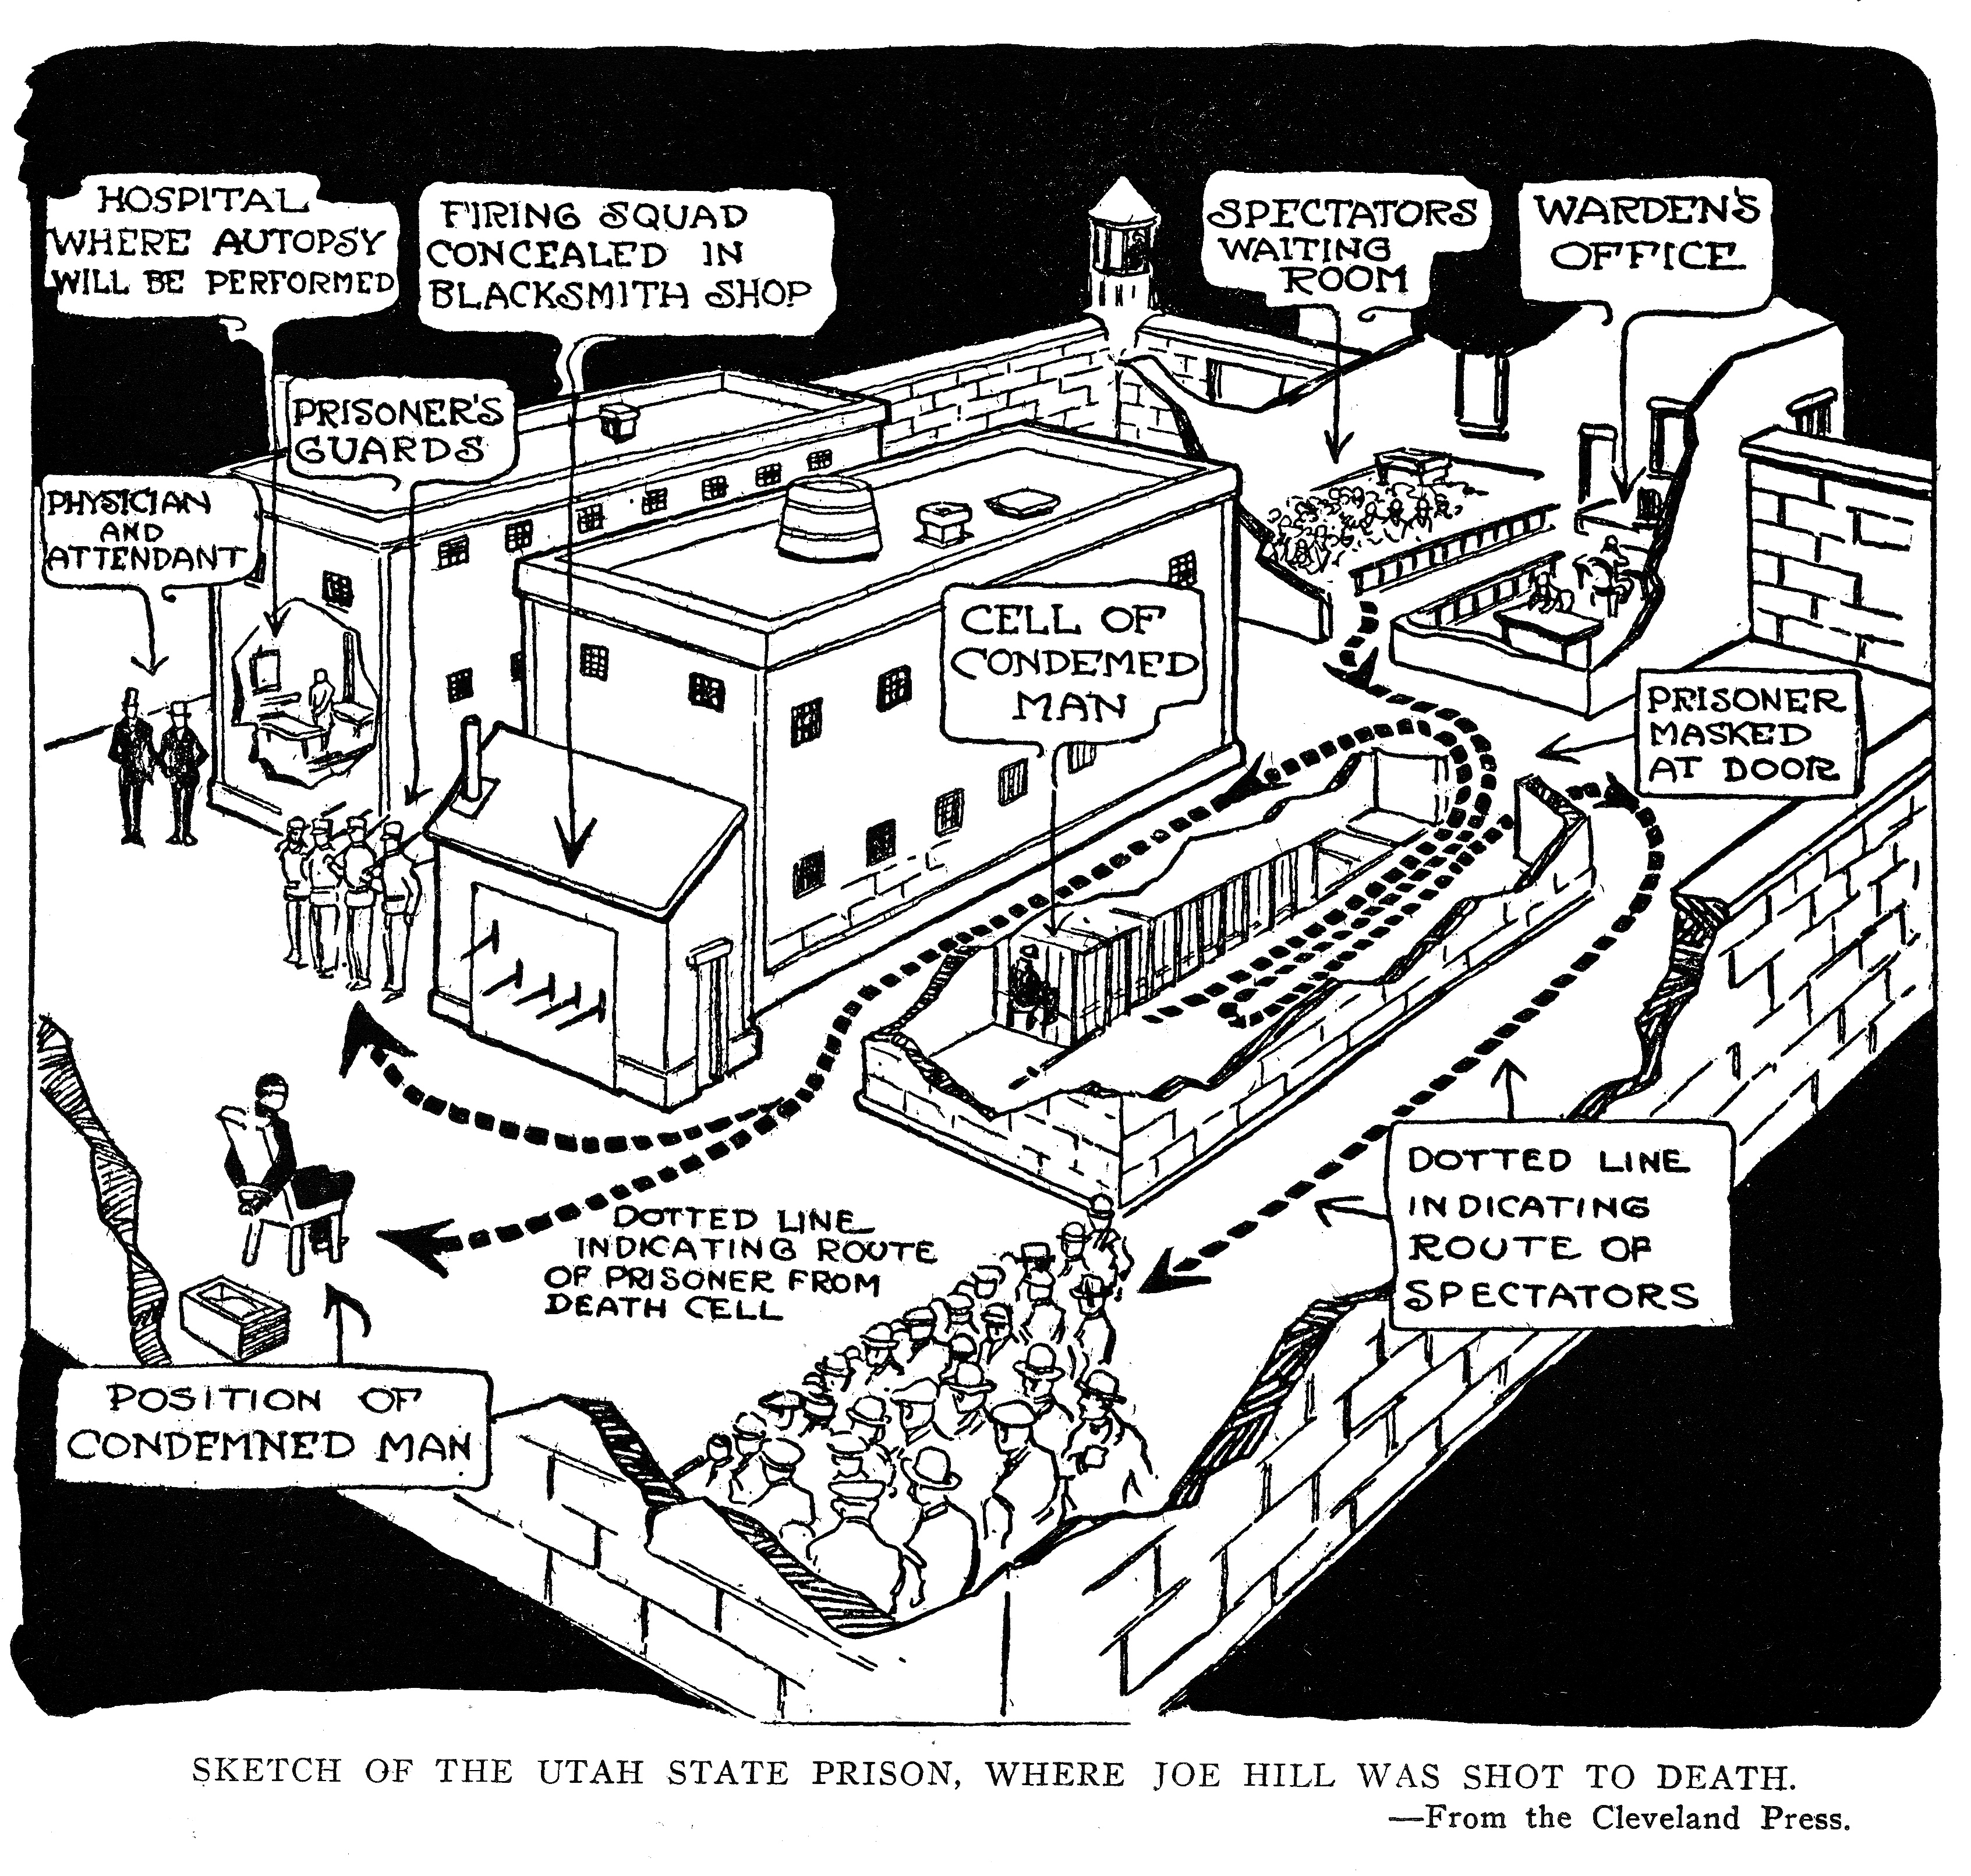 Joe Hill Wikipedia 1911schematicsandpartslists Please Download Free Gun Manual Here Diagram Of The Execution On November 19 1915